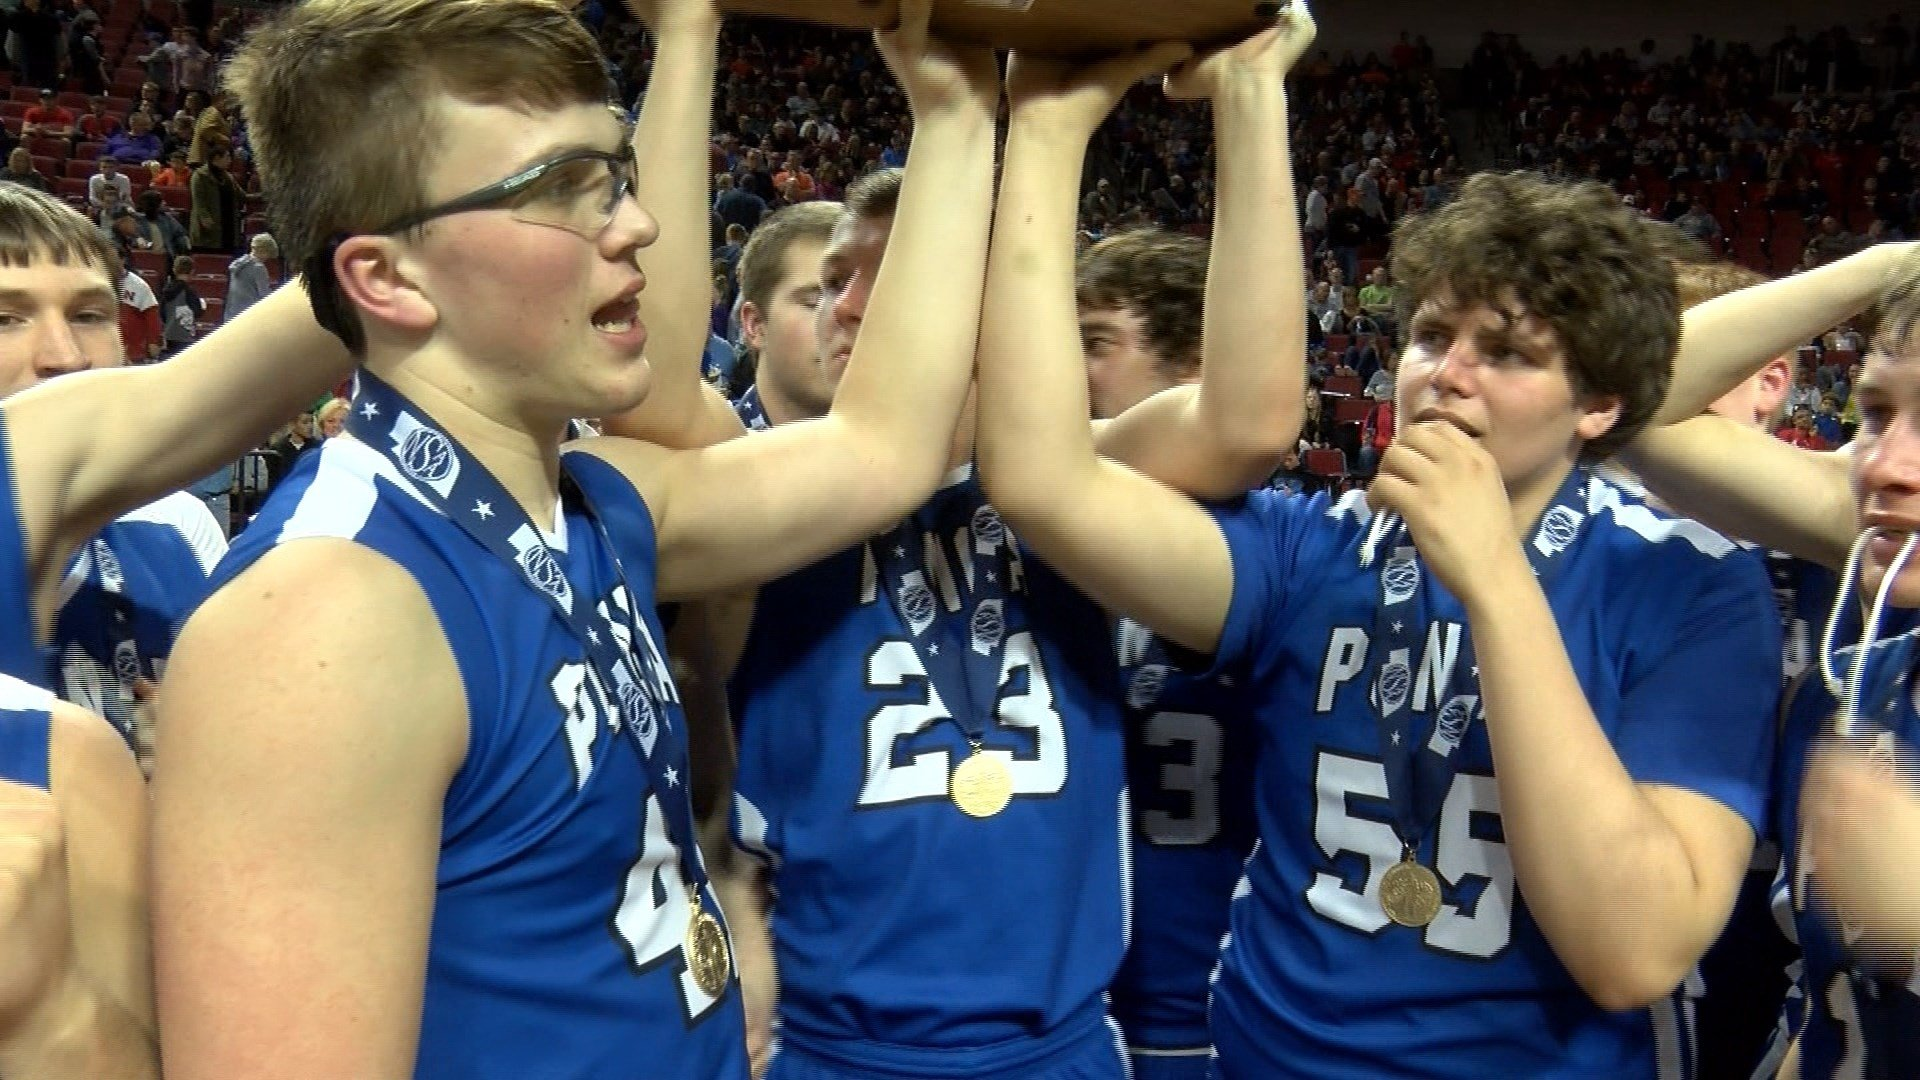 Ponca beat Hastings St. Cecilia on Saturday, 50-40, to win their second-straight Class C2 state championship.